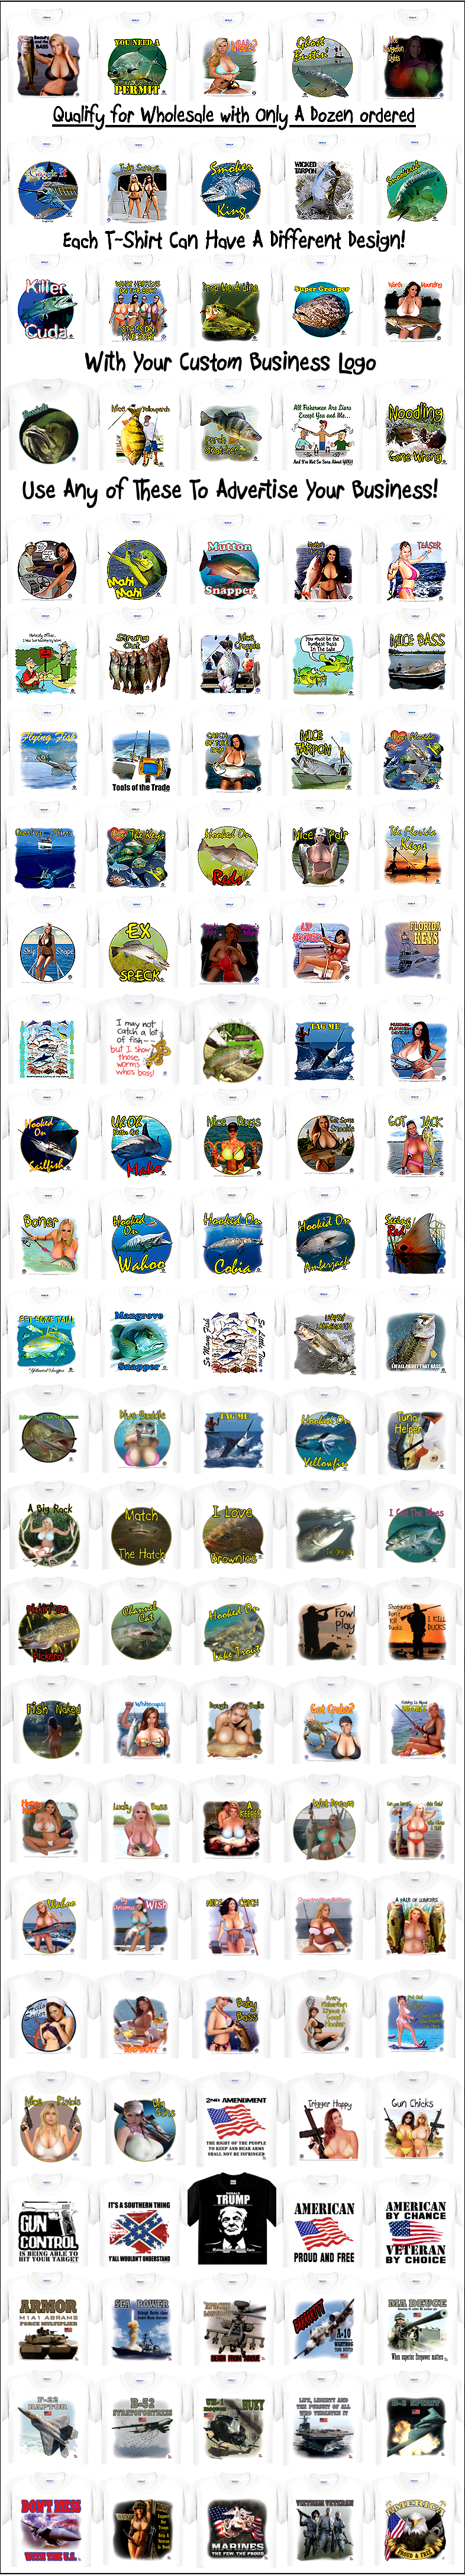 Over 100 Capt'n Tom's Artworks T-Shirt Thumbnails